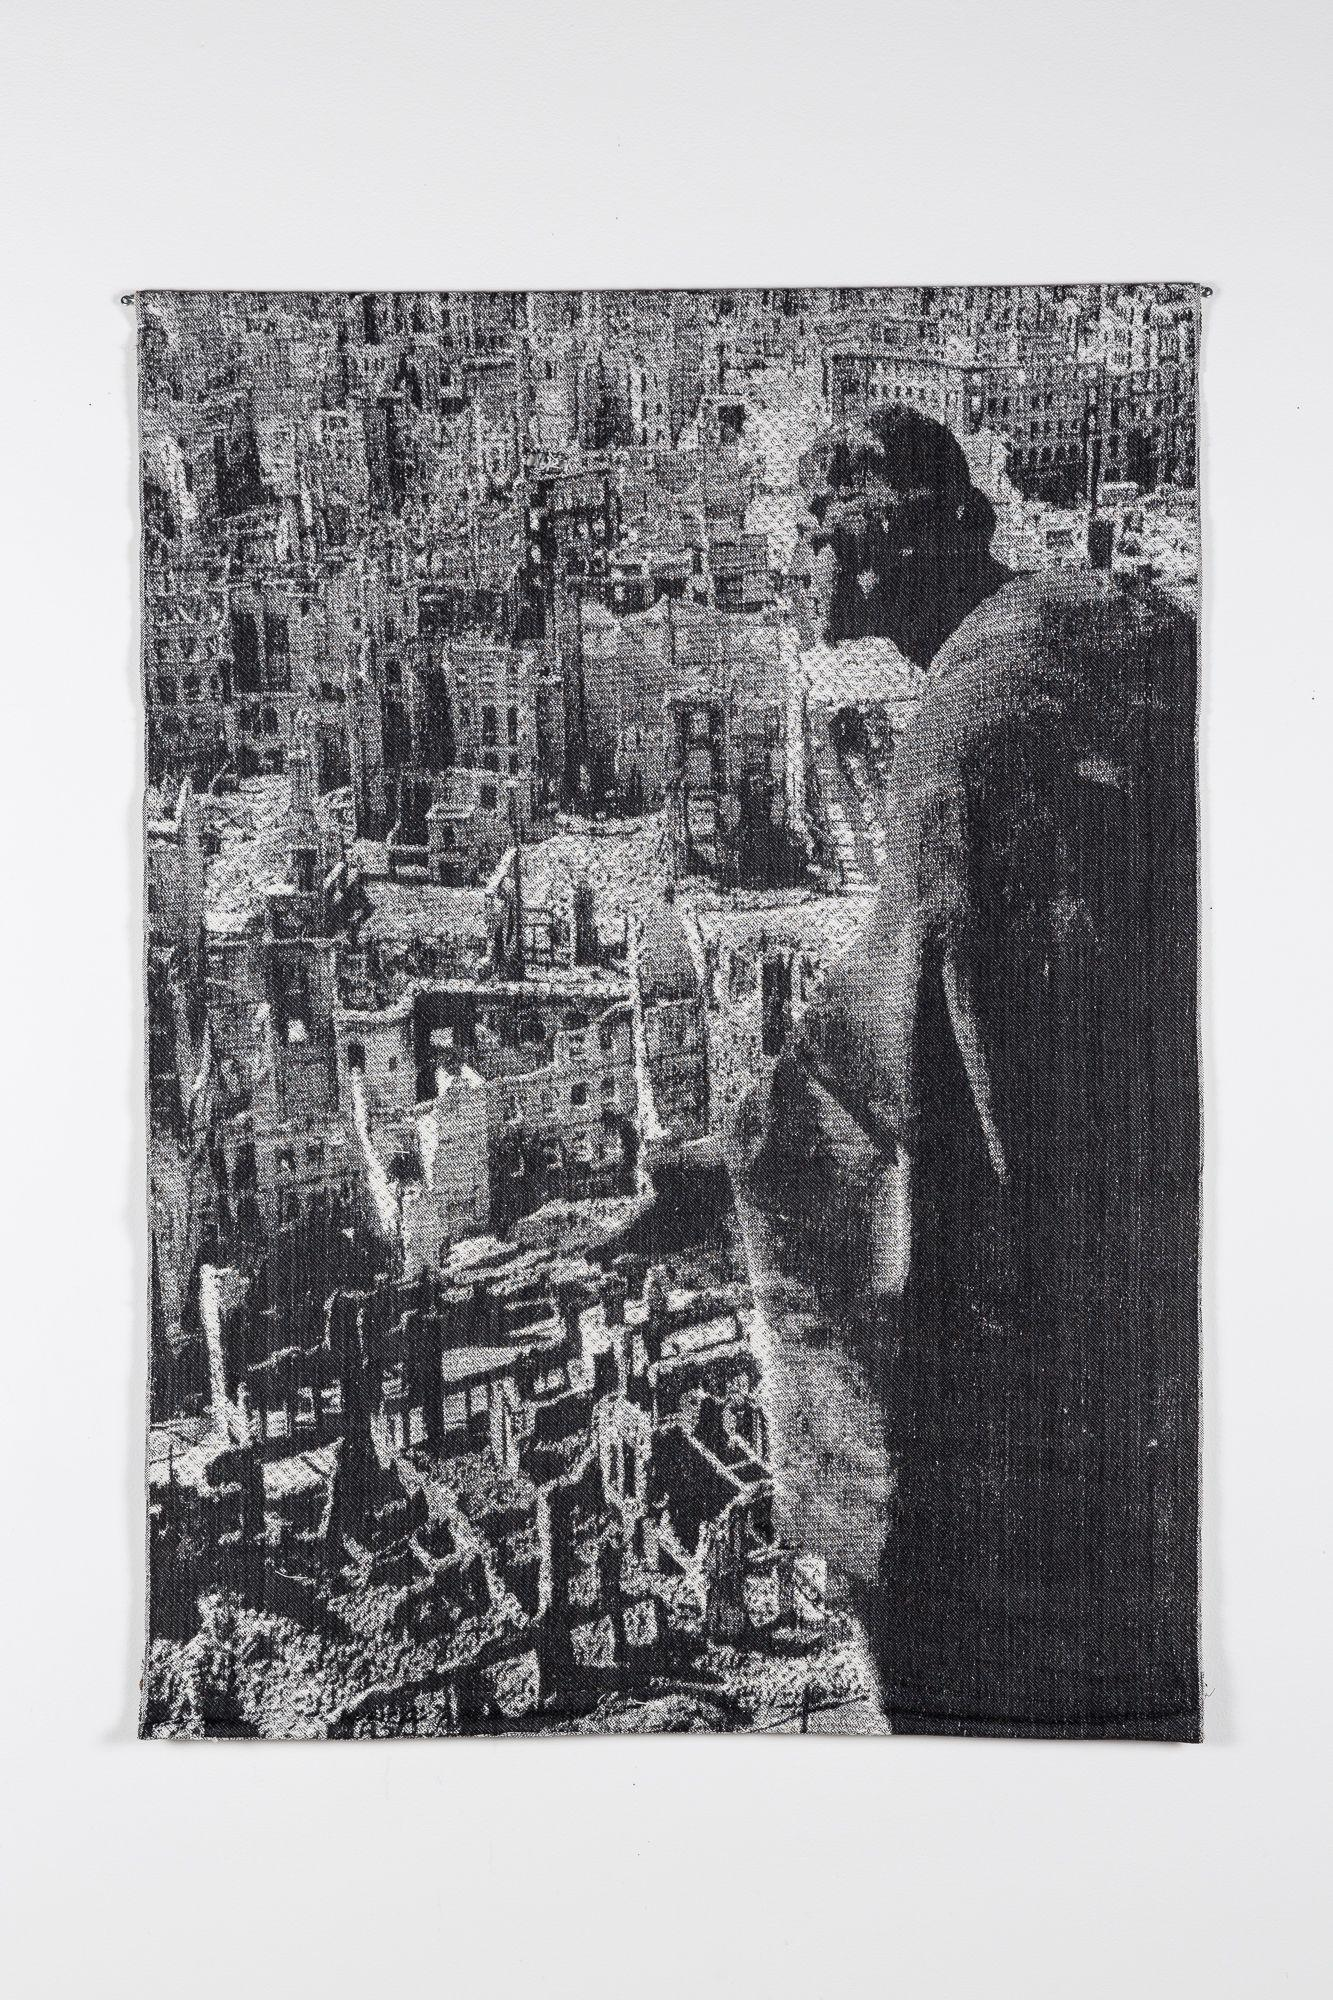 Digitally-woven tapestry depicting a view of the bombing of Dresden